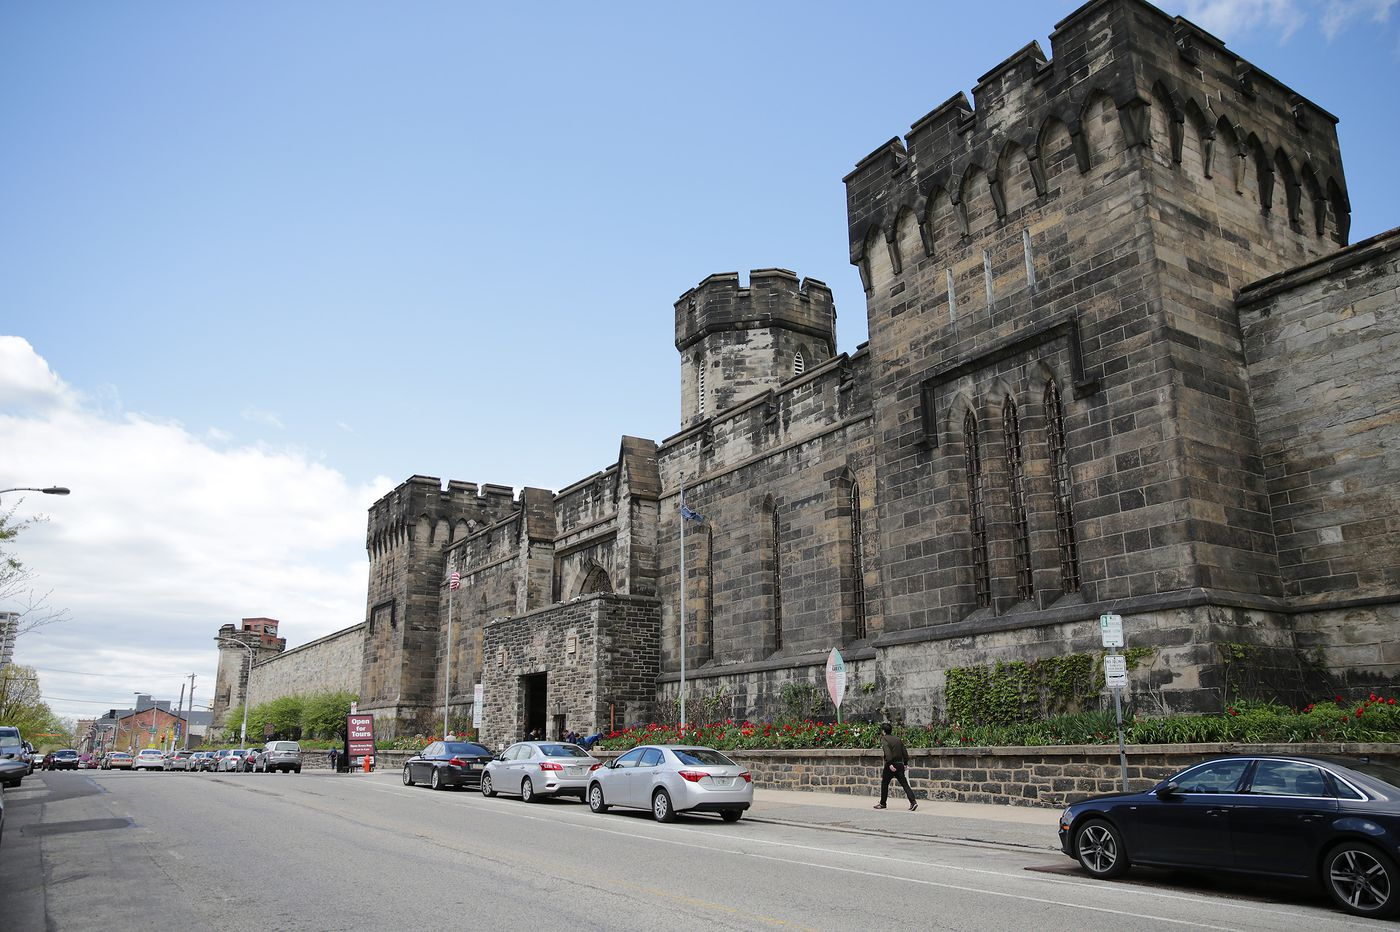 Touring Eastern State Penitentiary: Watchful eyes, hidden messages, mystery murals